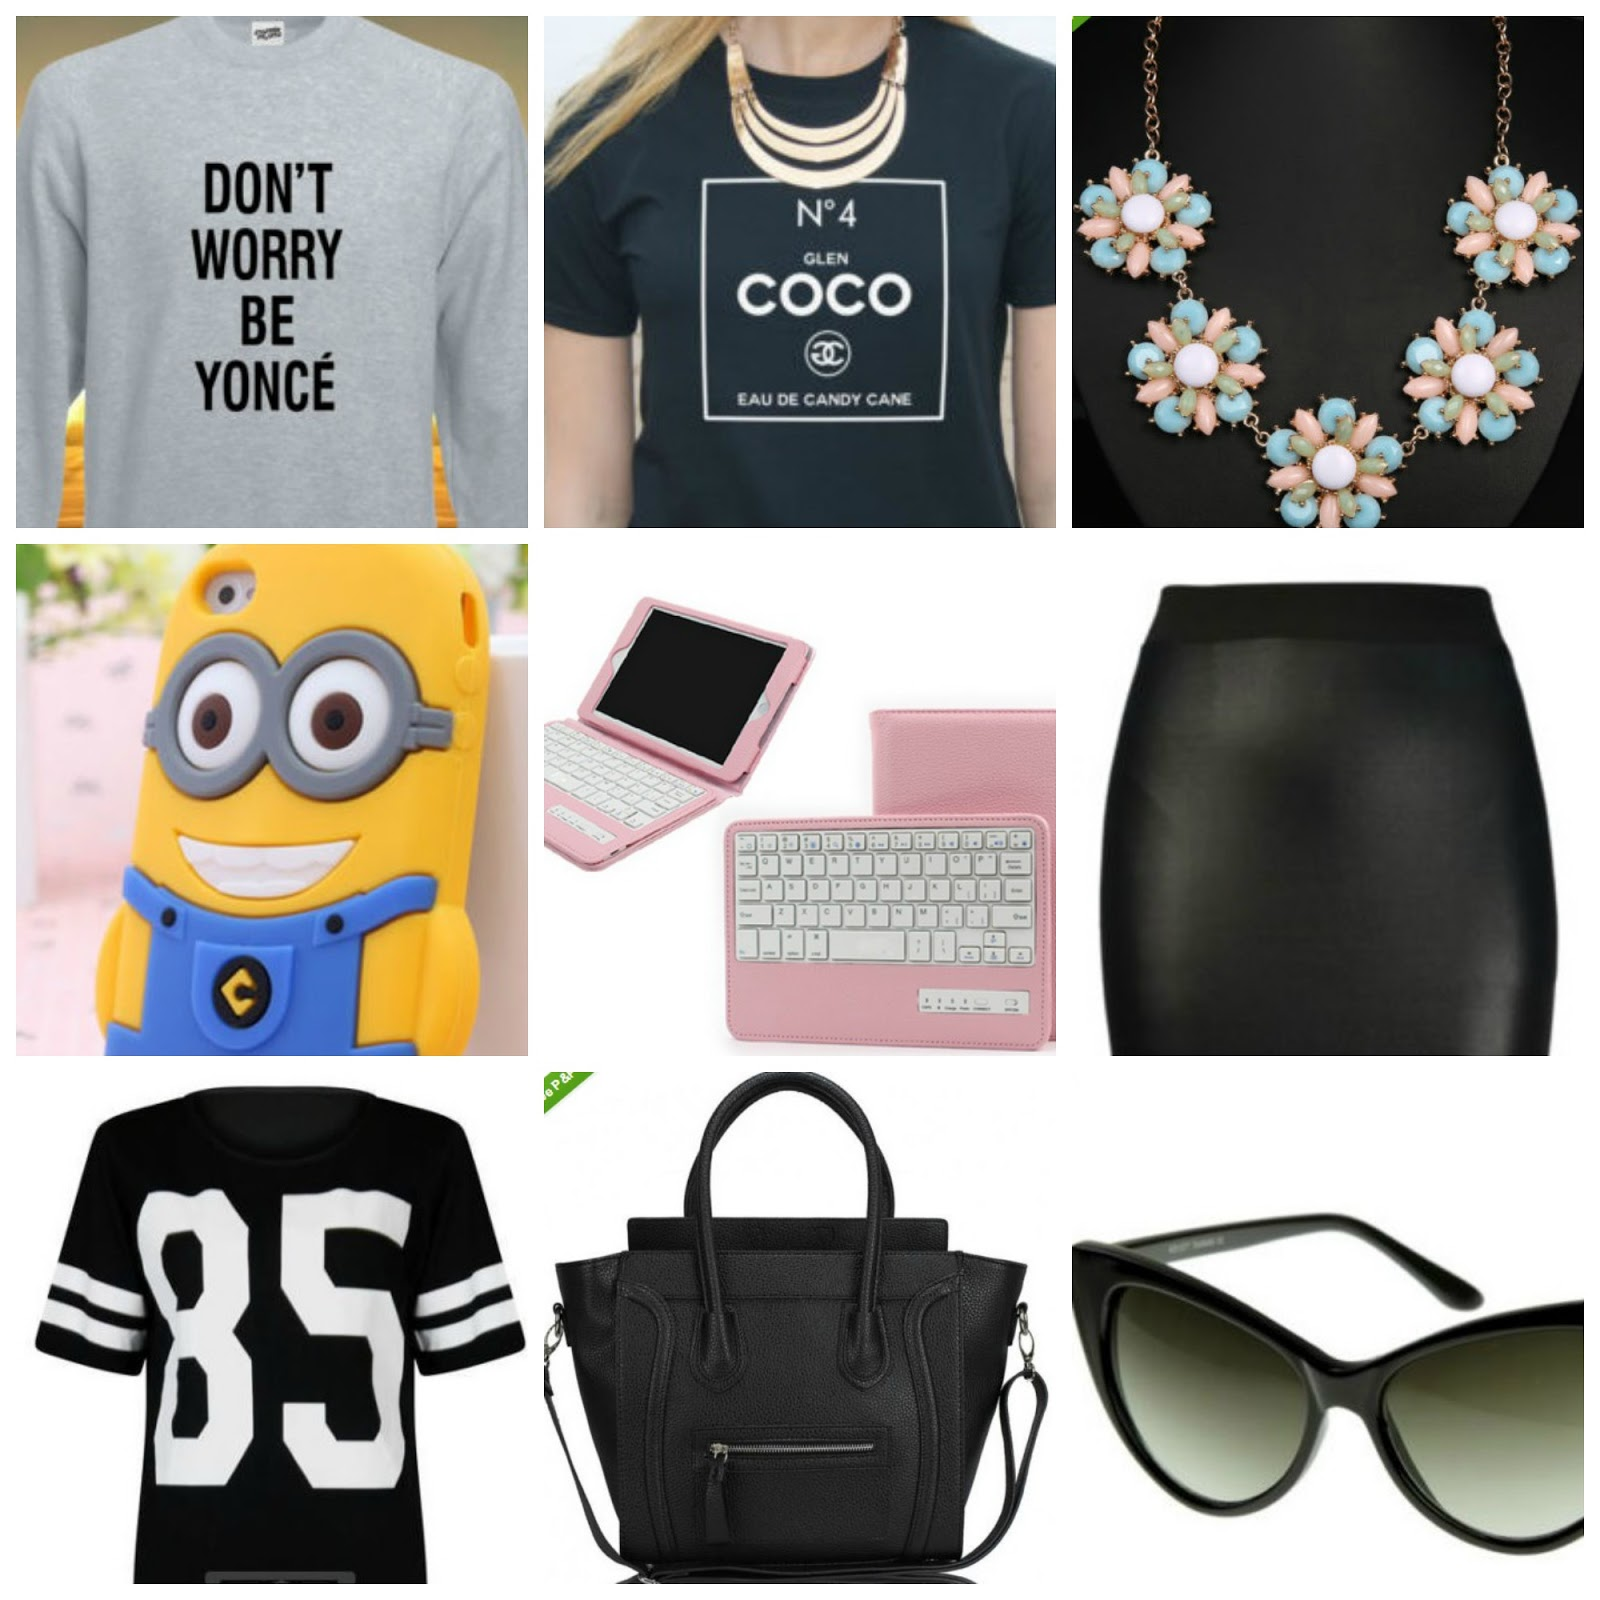 beyonce jumper, meangirls tshirt, pastel necklace, pencil skirt, minion phonecase, ipad cover, celine inspired bag, varisty top, cateye sunglasses